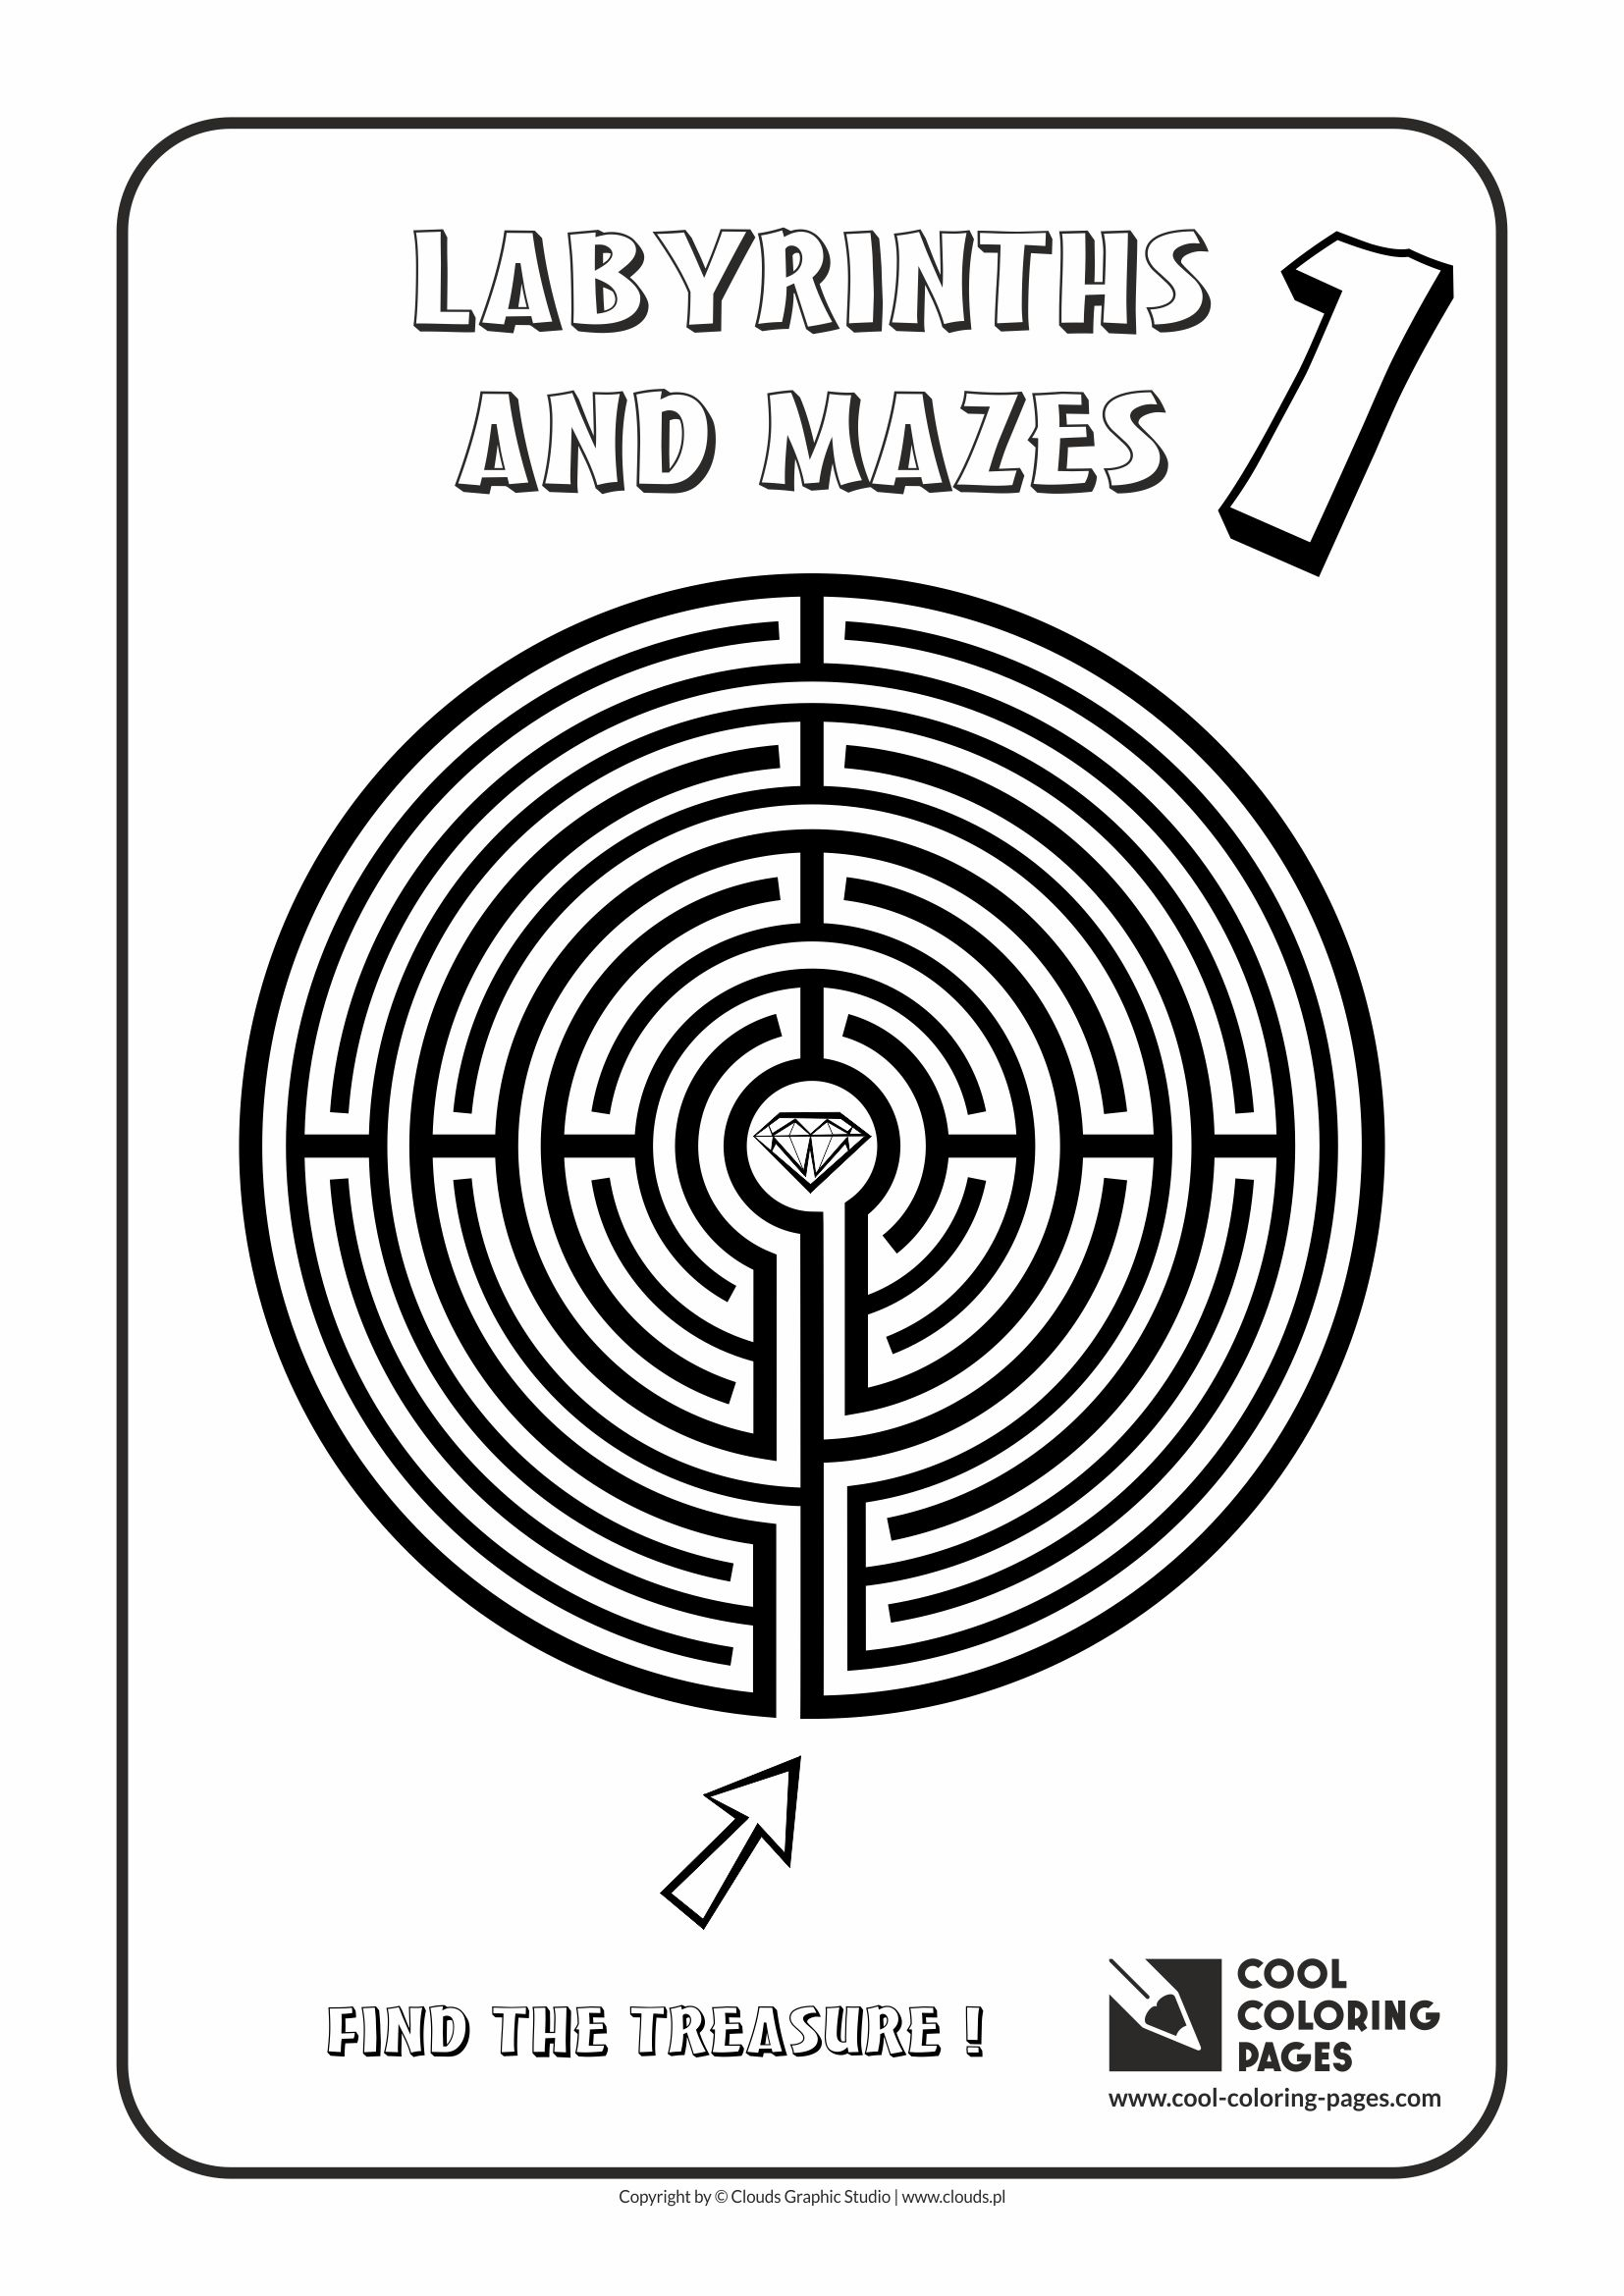 Cool Coloring Pages - Labyrinths and mazes / Maze no 1